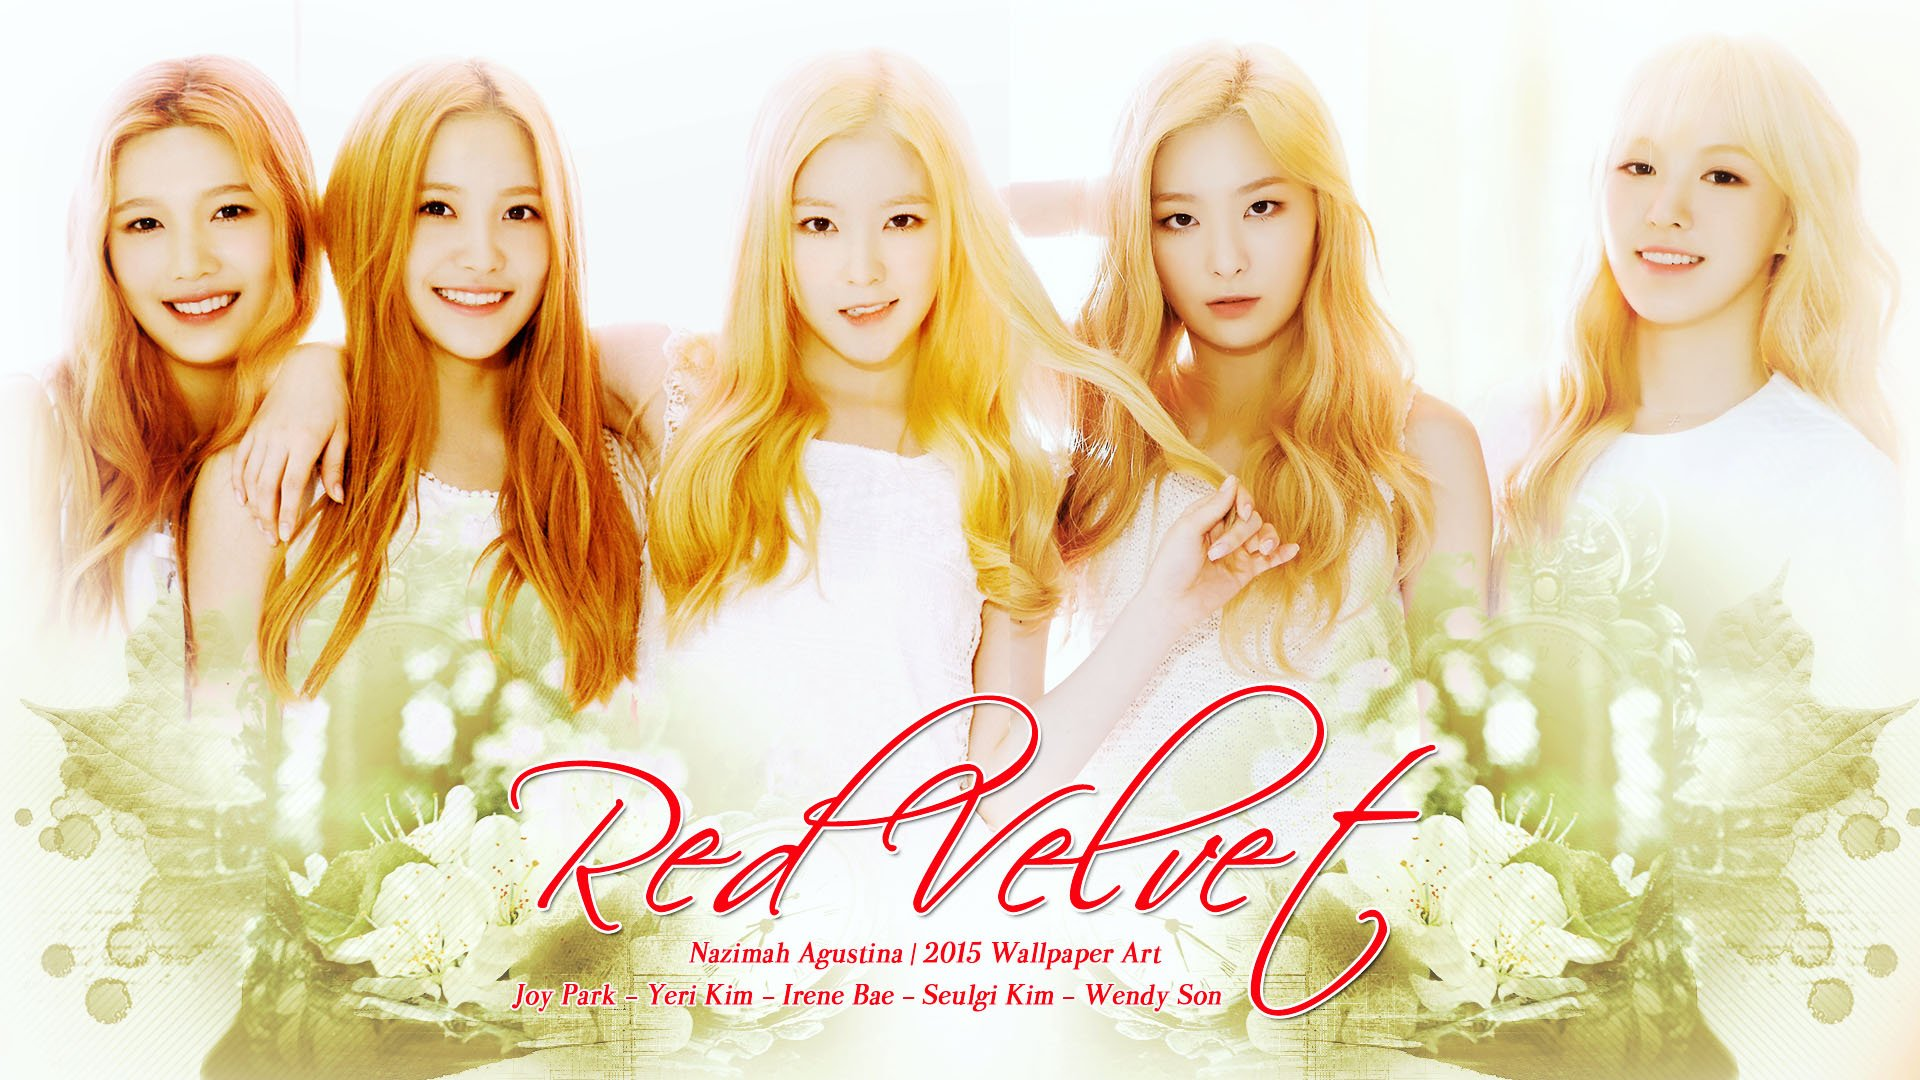 Red Velvet Hd Wallpaper 40045 Asiachan Kpop Image Board